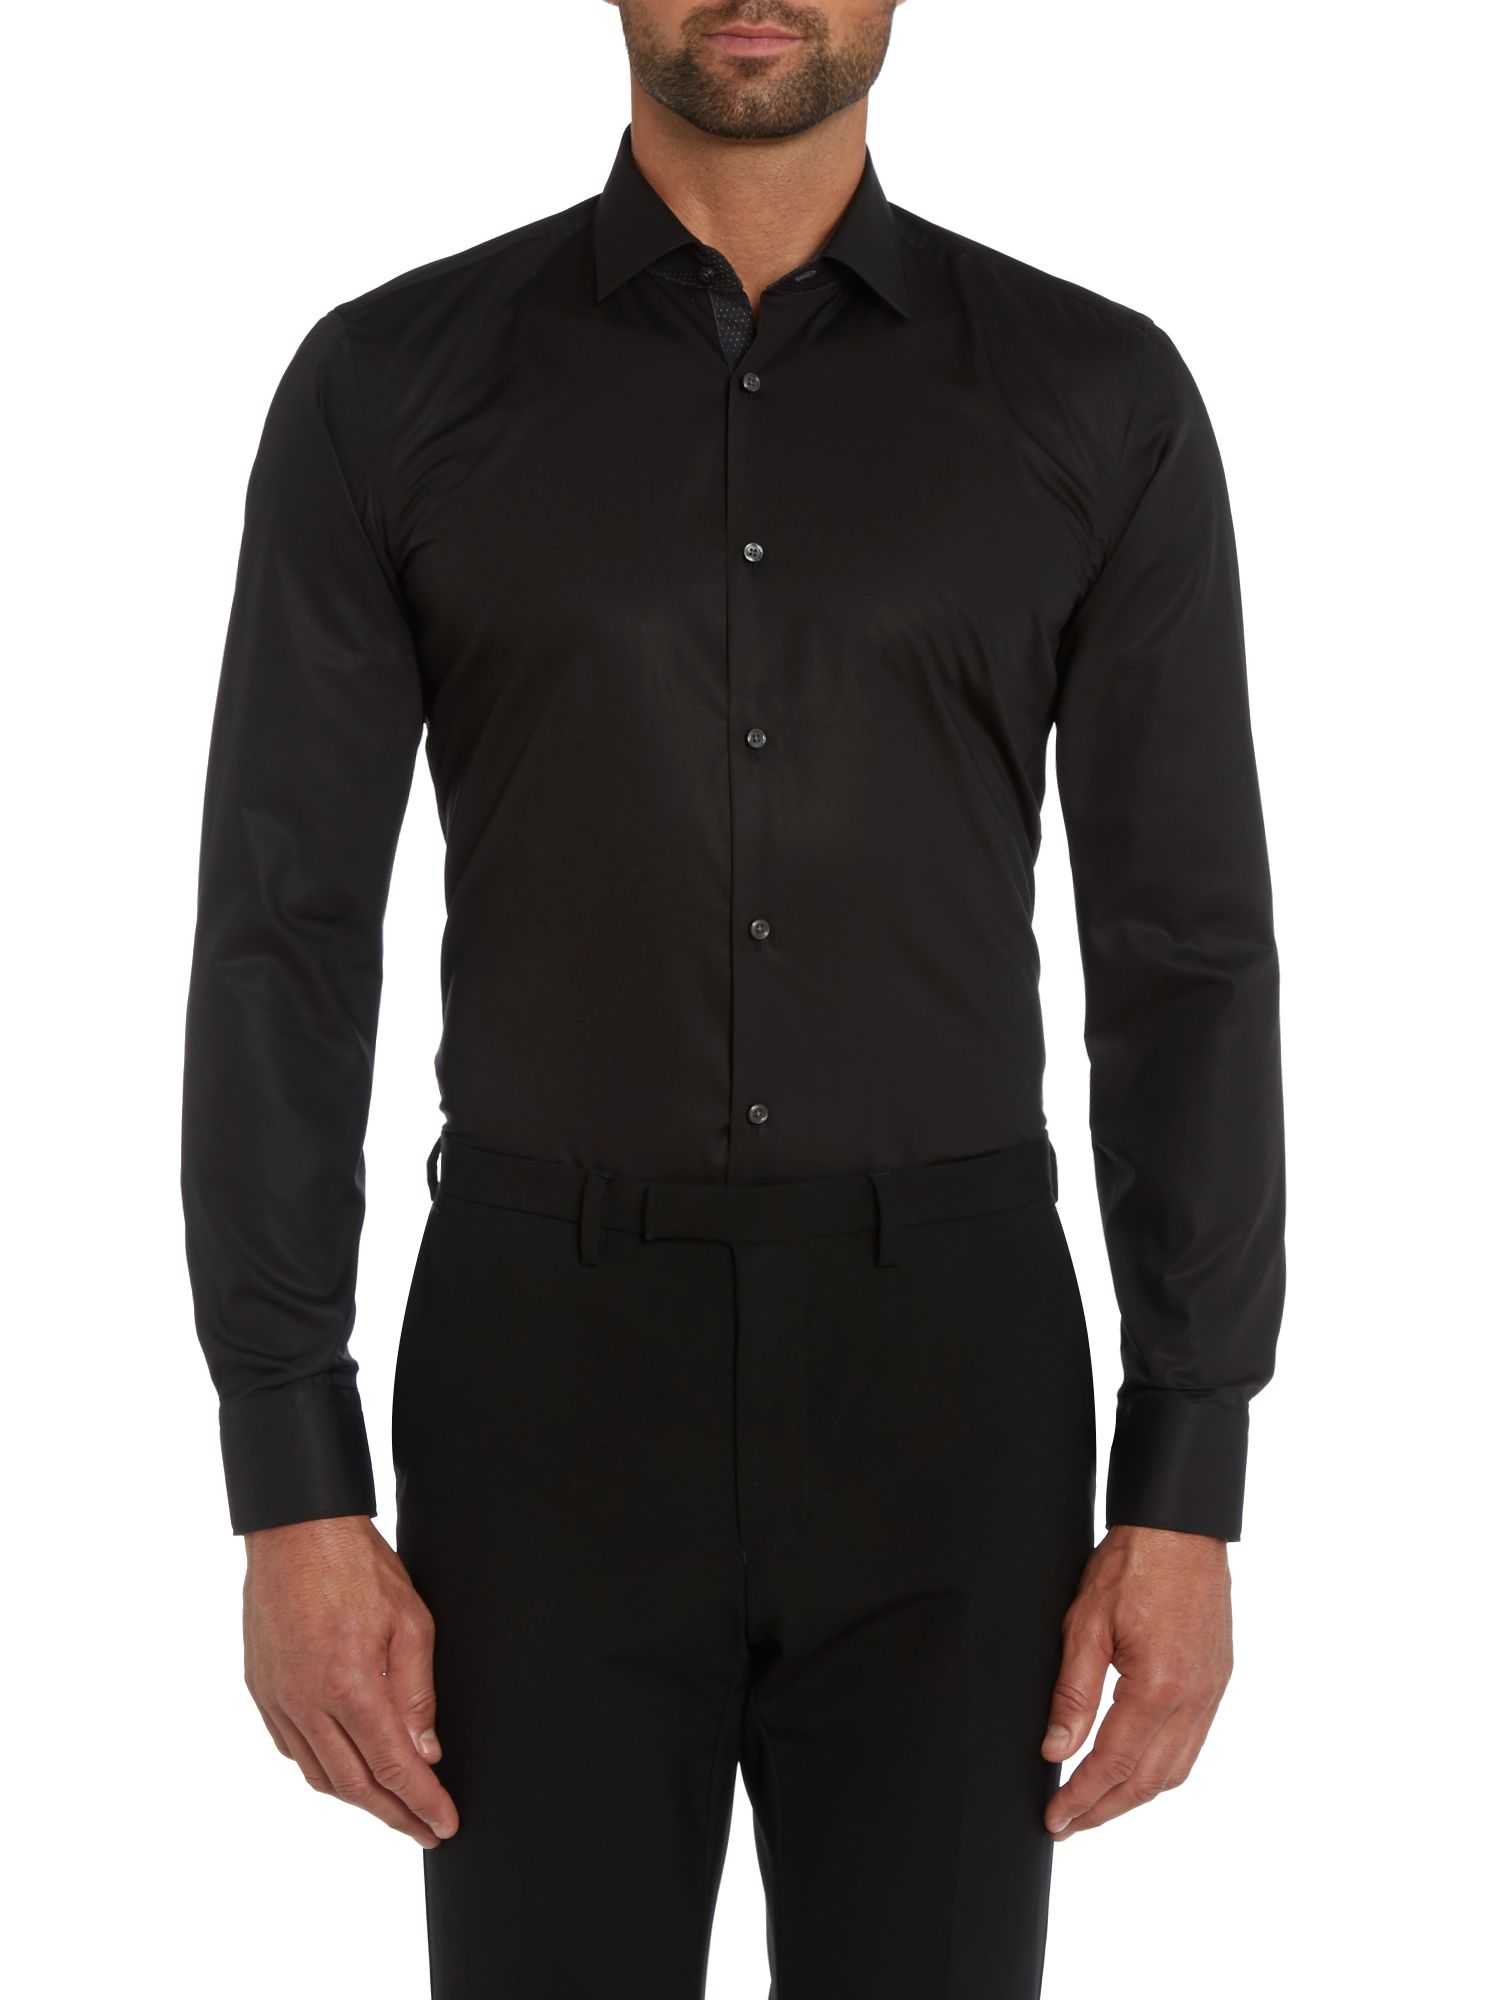 Juri slim fit shirt with contrast internal collar